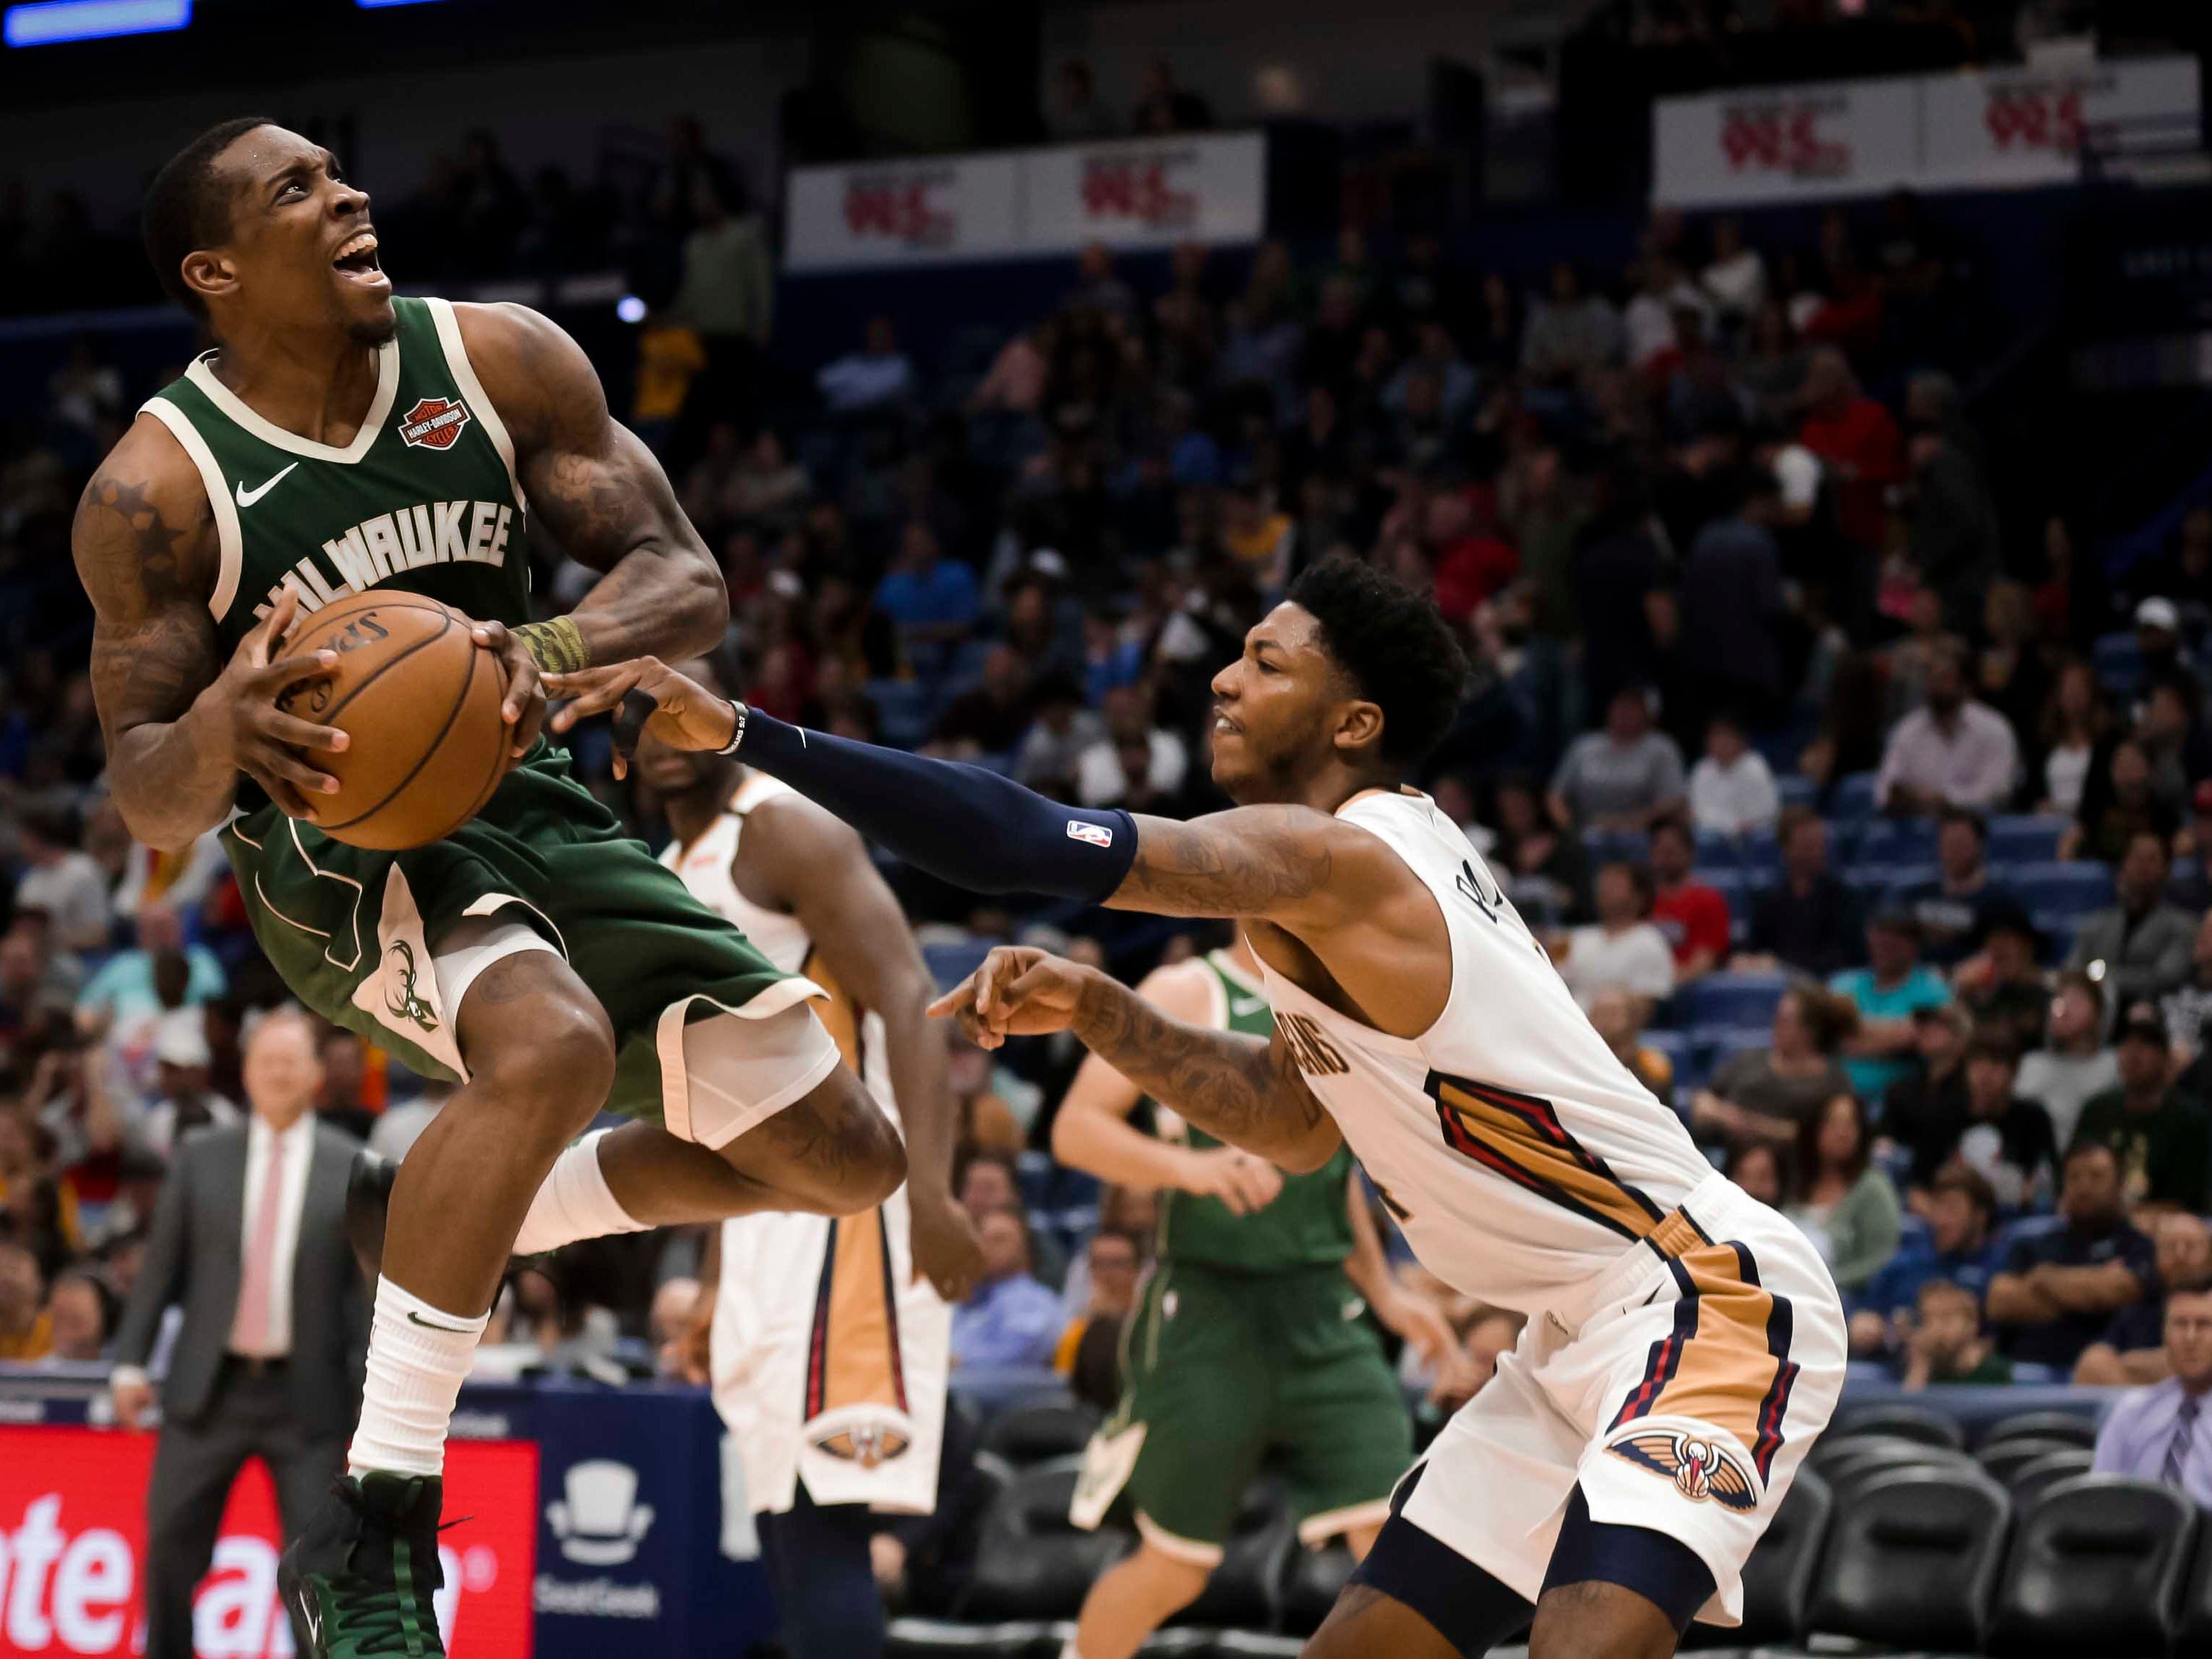 Bucks guard Eric Bledsoe goes up for a shot after driving to the rack against Pelicans guard Elfrid Payton during the second half Tuesday night at the Smoothie King Center in New Orleans.